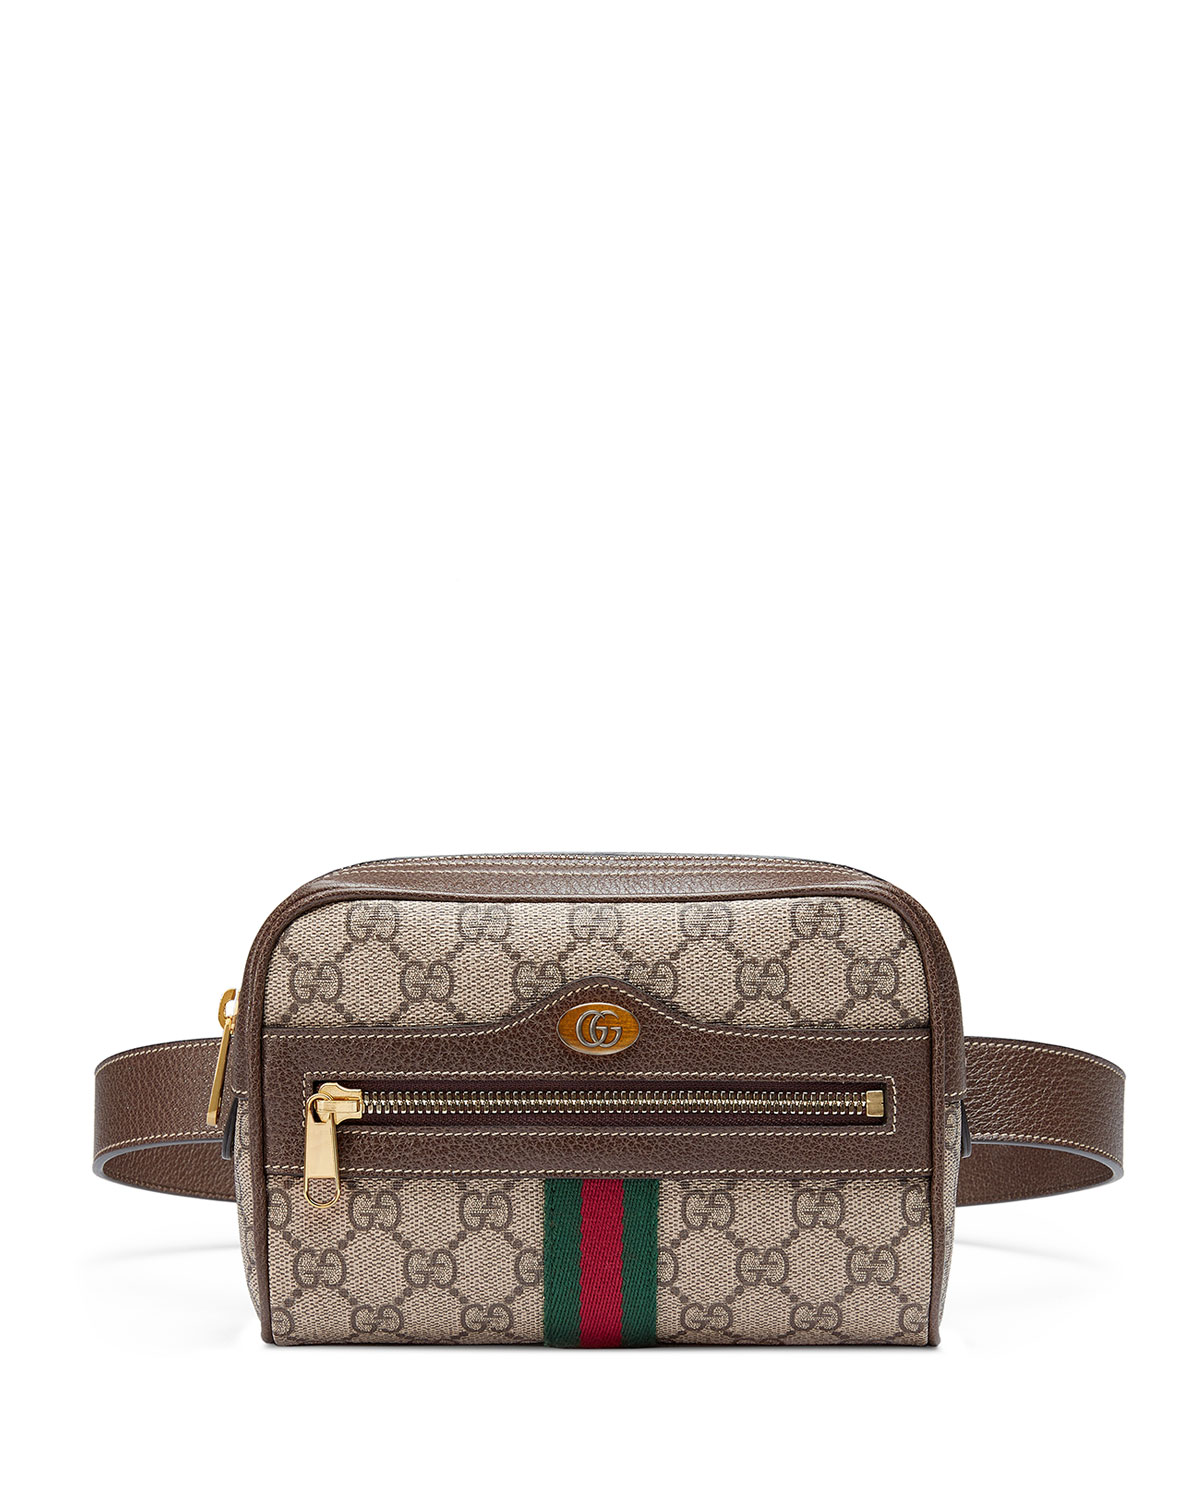 fd0fa81ed62 Gucci Ophidia GG Supreme Canvas Belt Bag